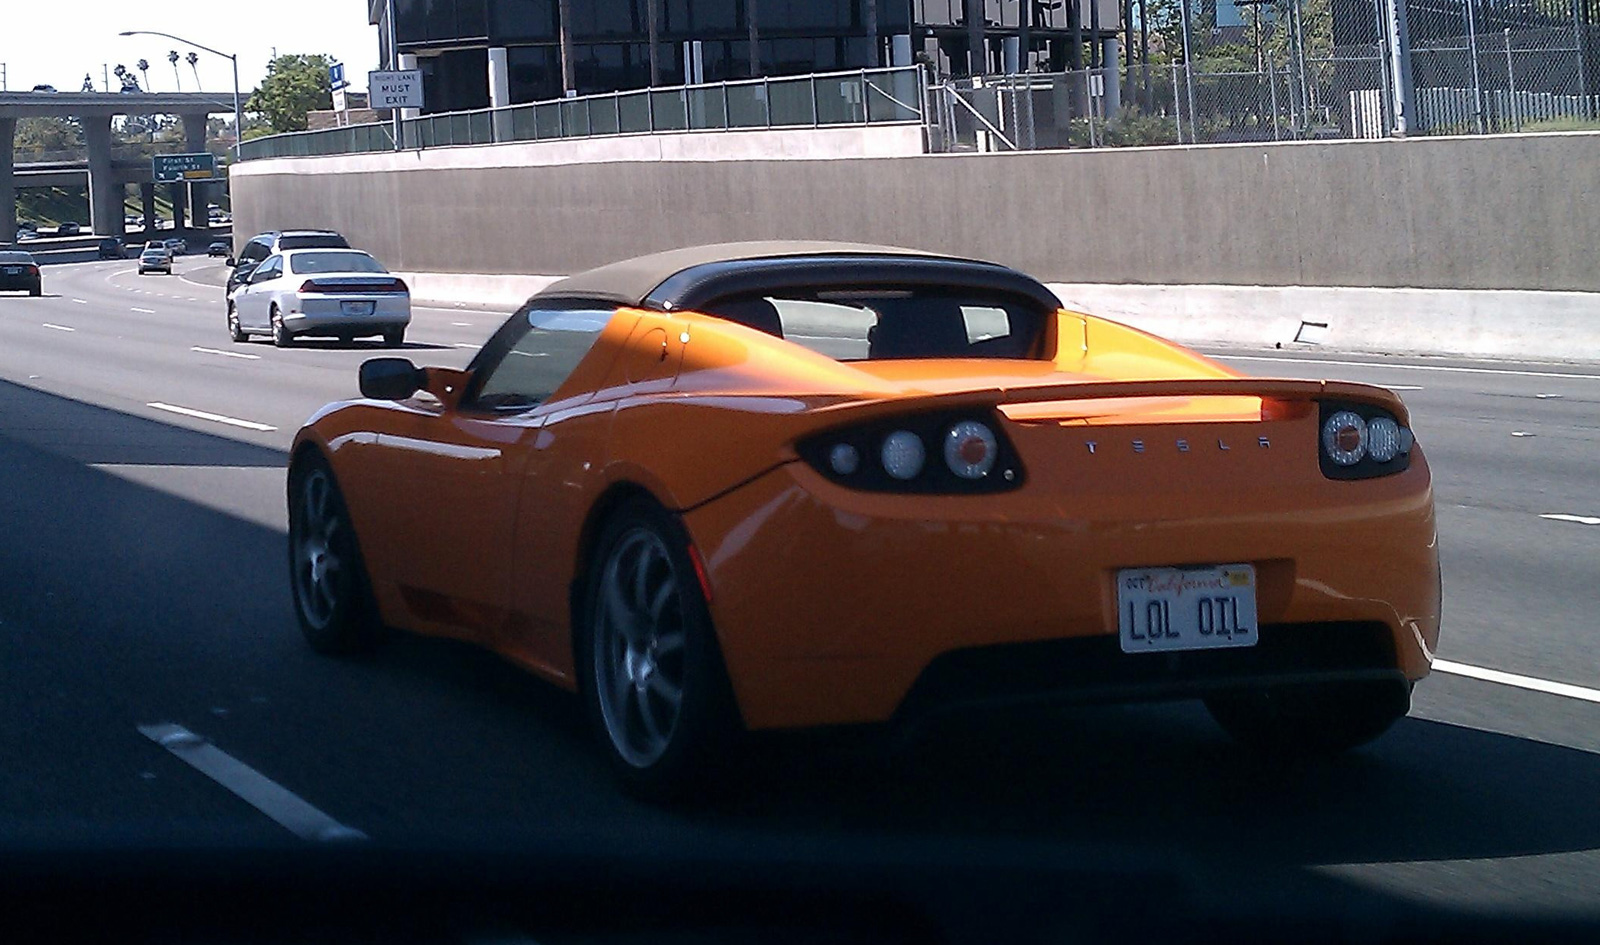 Perfect Licnese Plate for Tesla Roadster